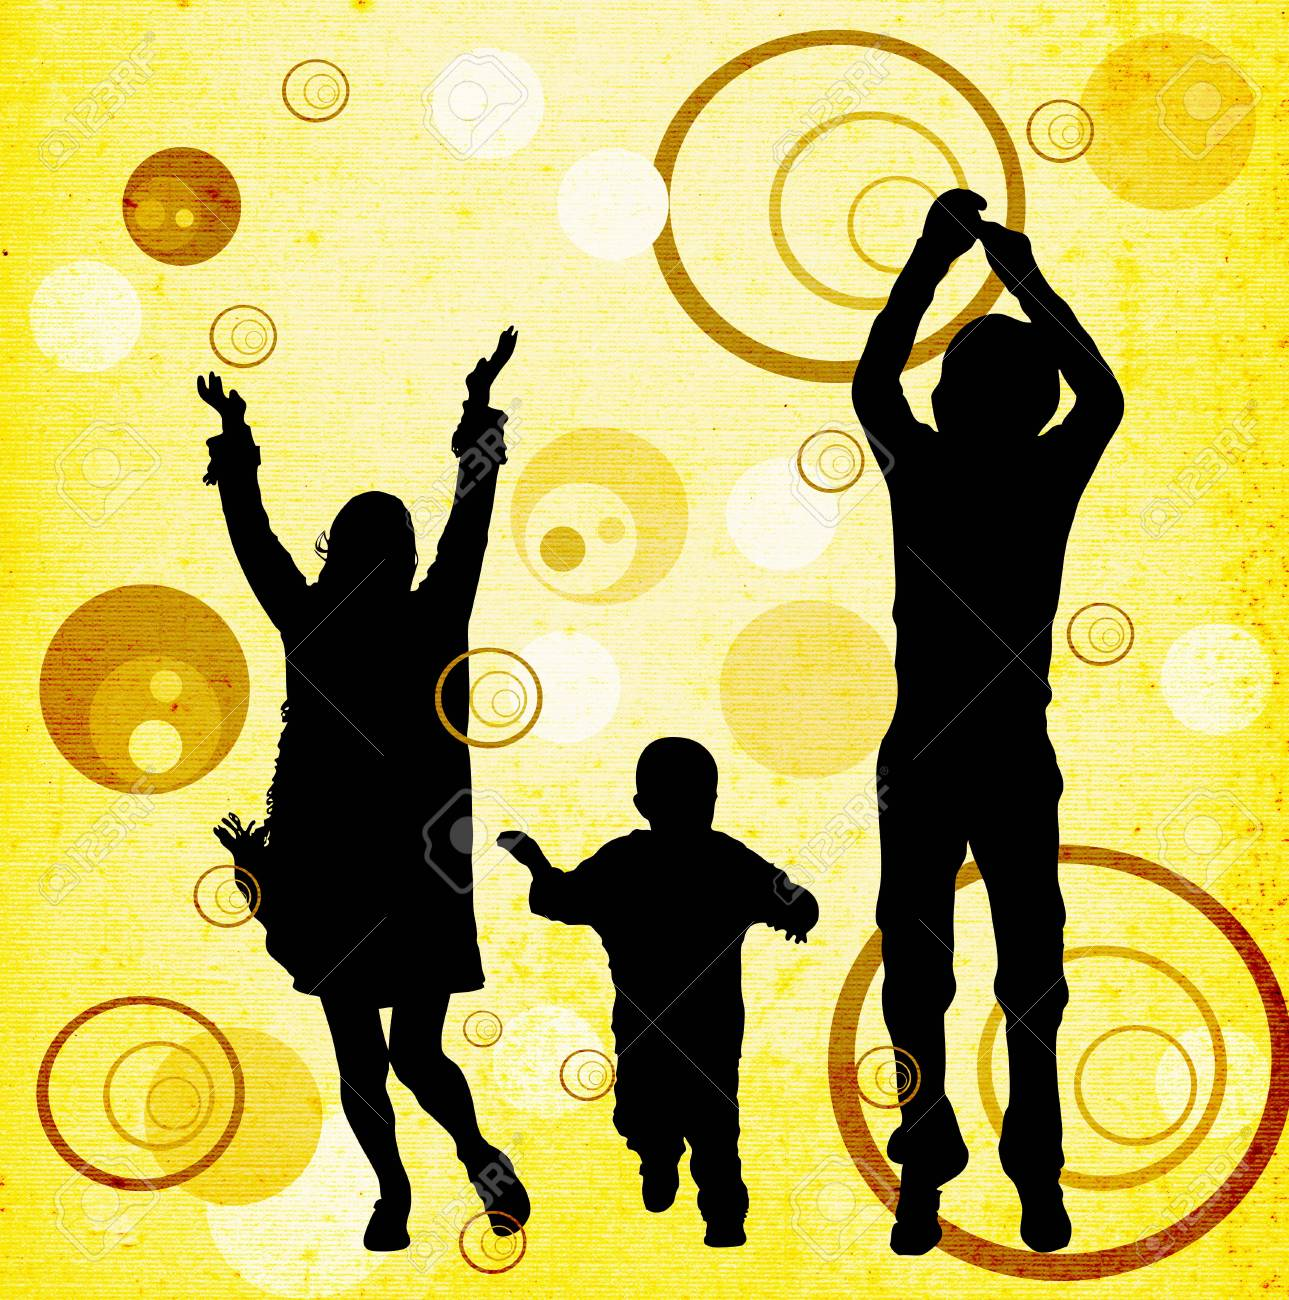 illustration of an urban scene with a familly silhouettes Stock Photo - 1282588